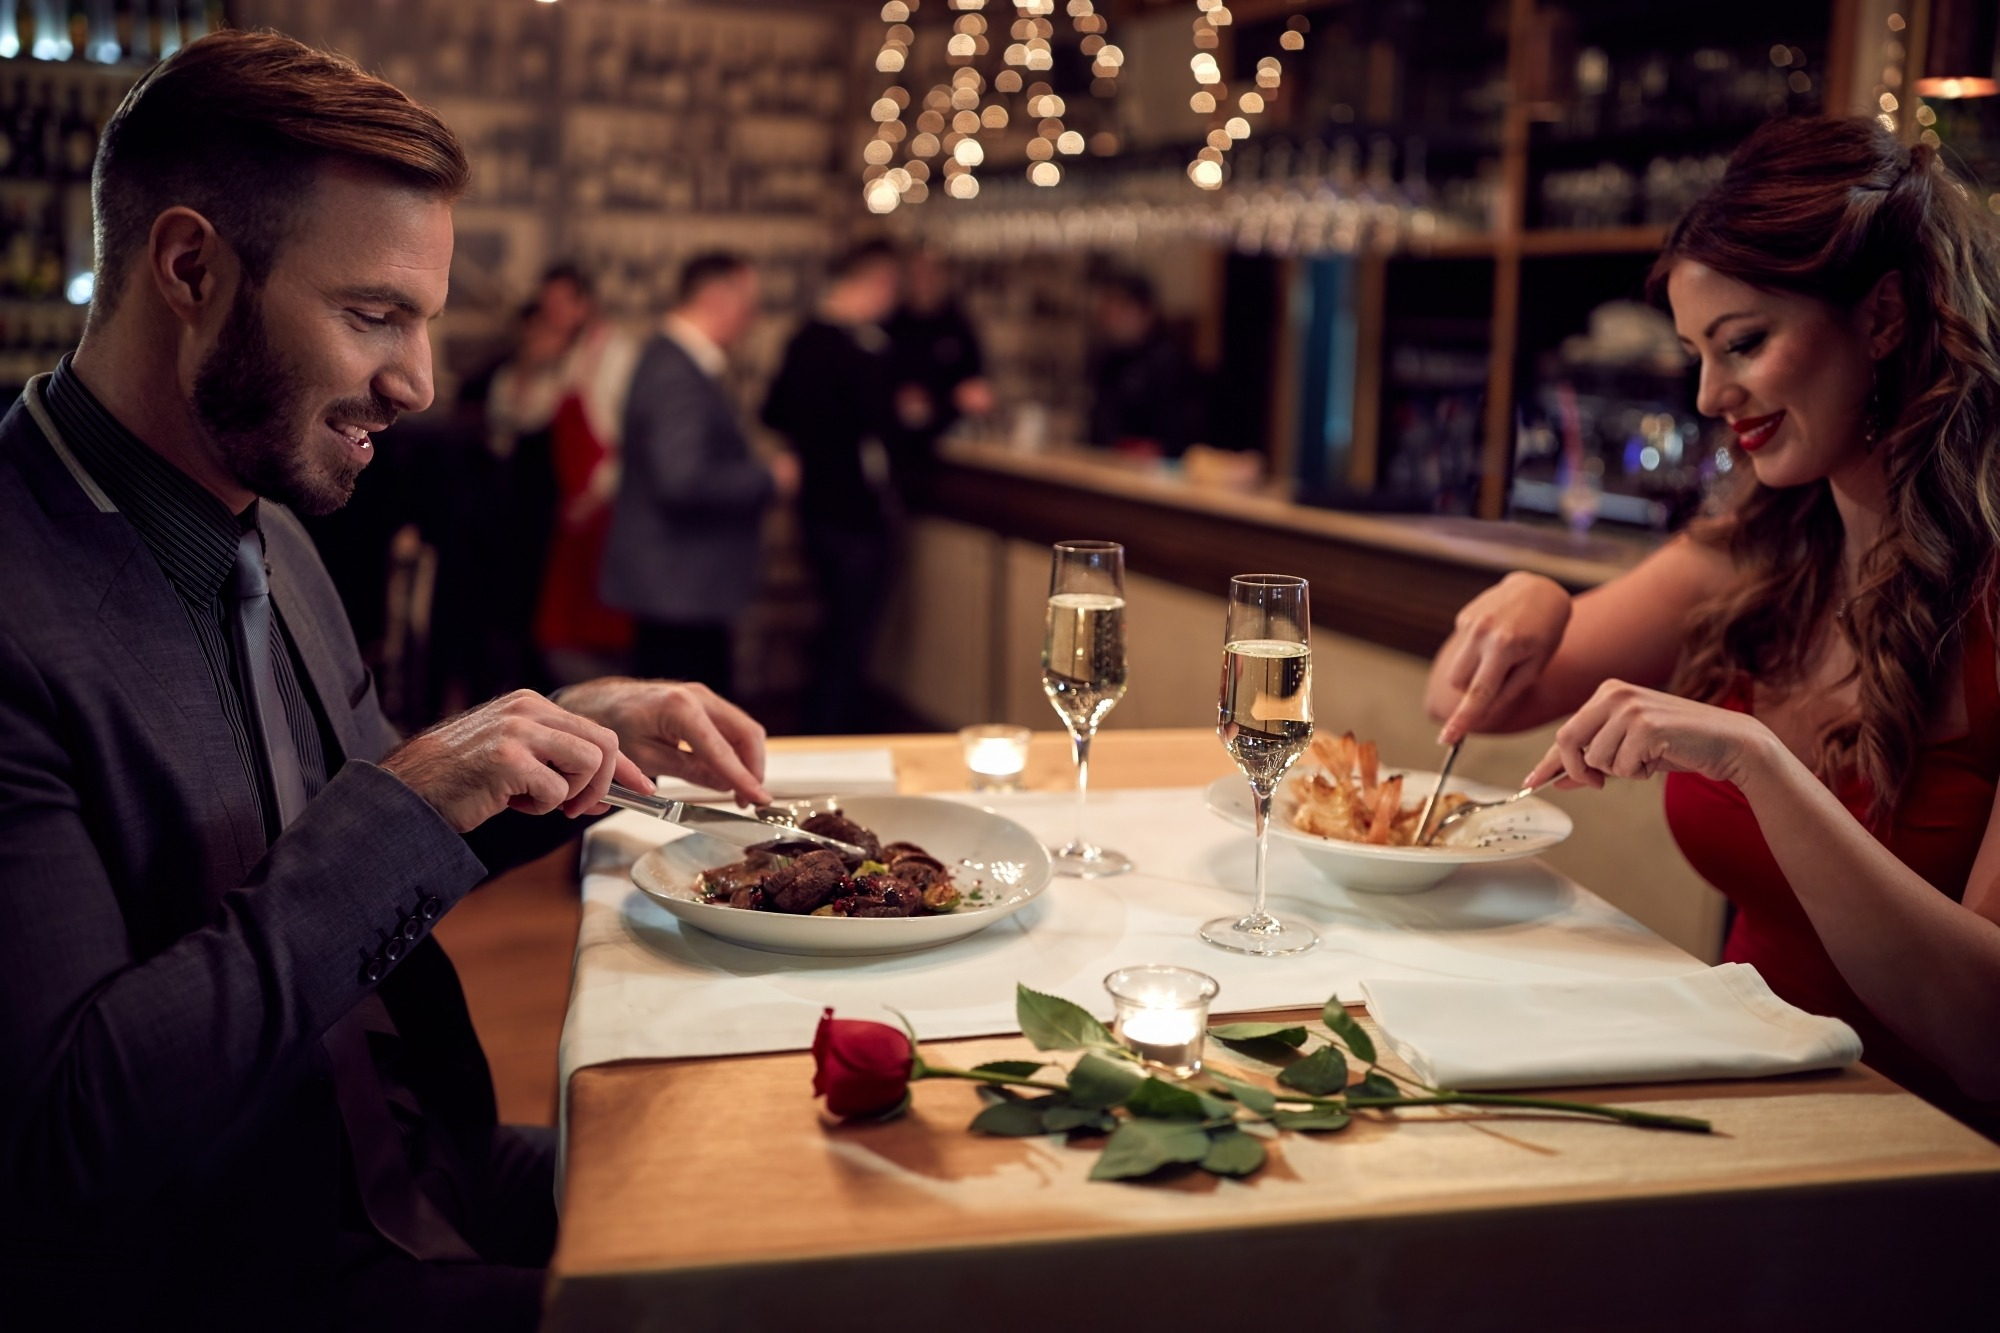 image of couple dining at restaurant with wine and a red rose on the table.